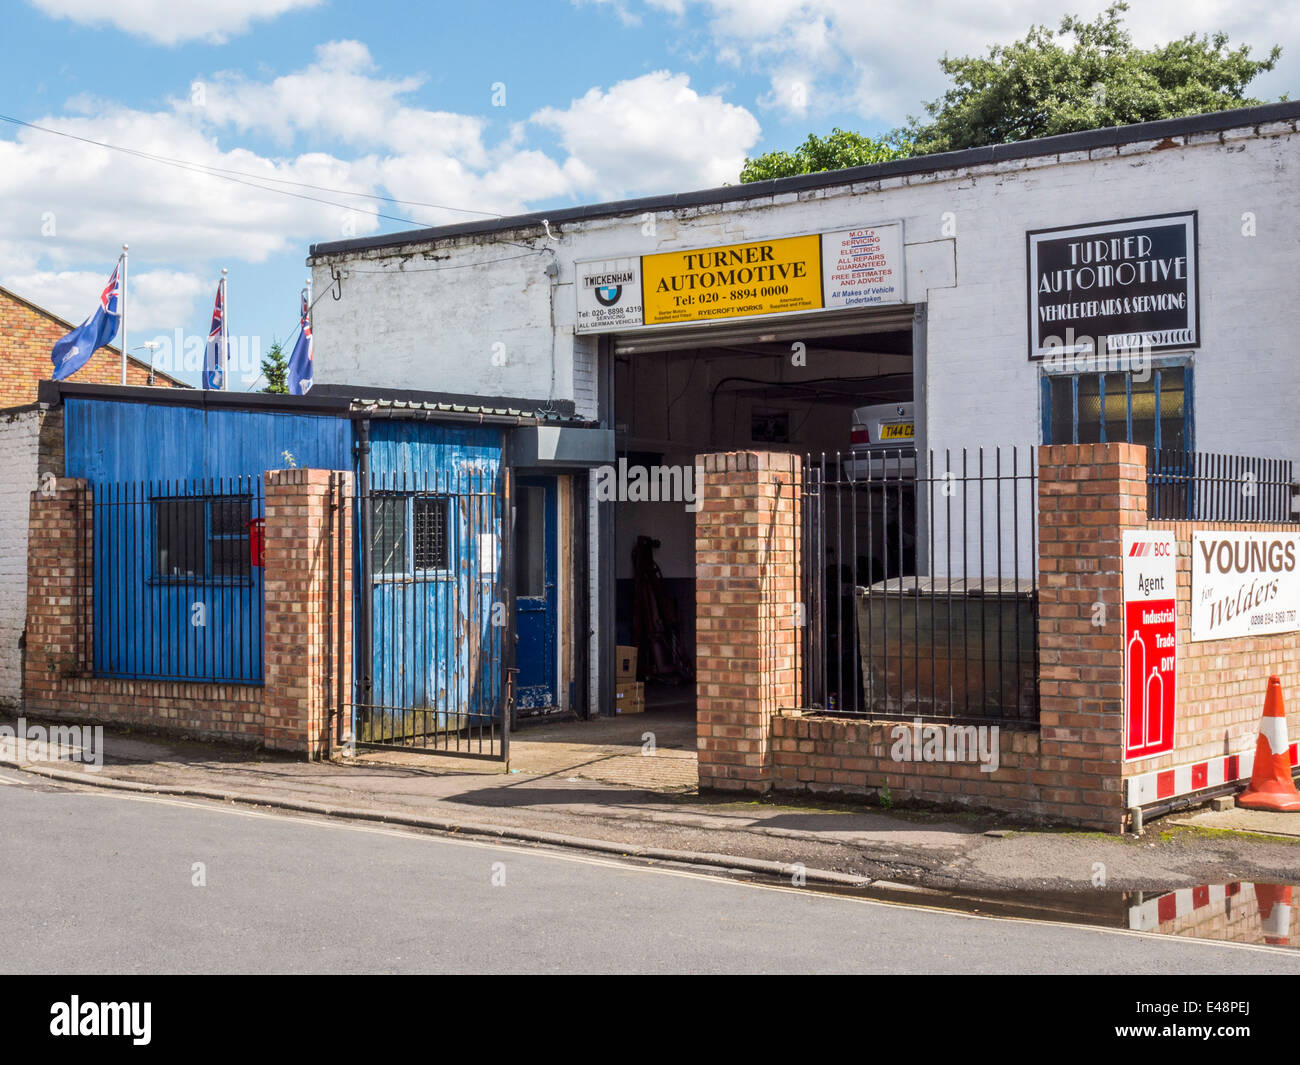 Turner Automotive - Business for repairs, servicing and M.O.T in Twickenham, London, UK - Stock Image